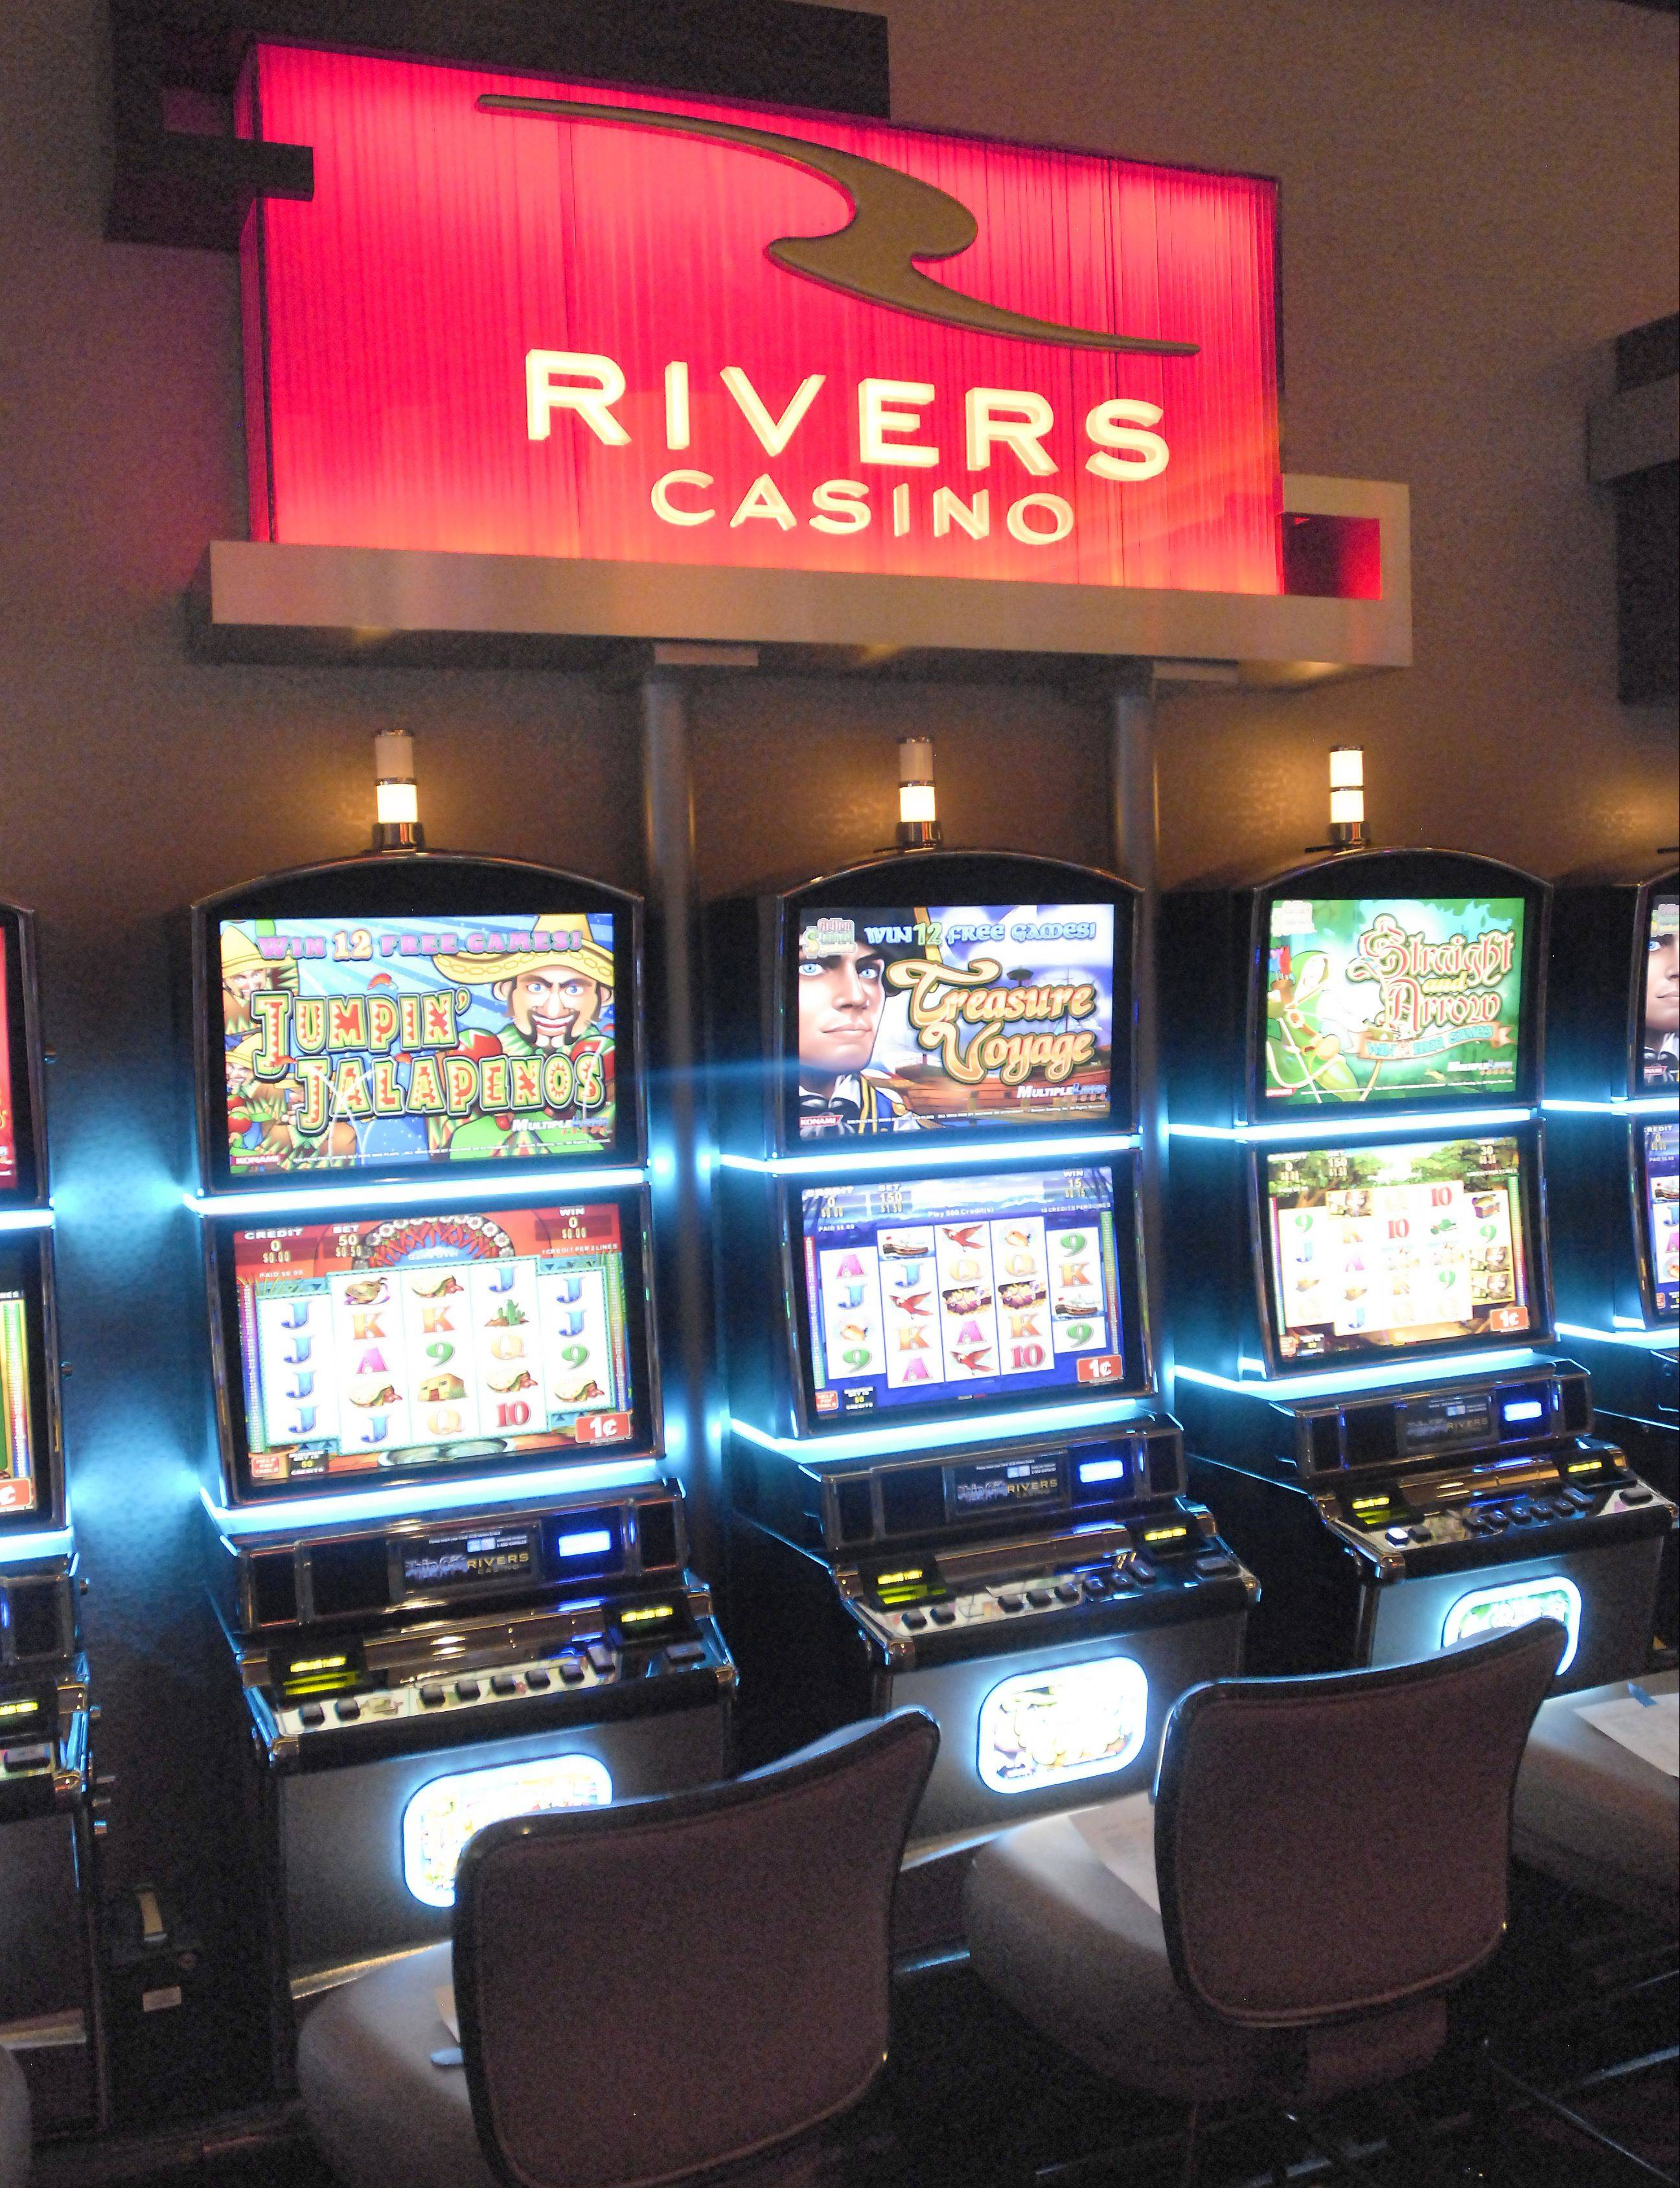 The new Rivers Casino is the most lucrative gambling facility in Illinois.